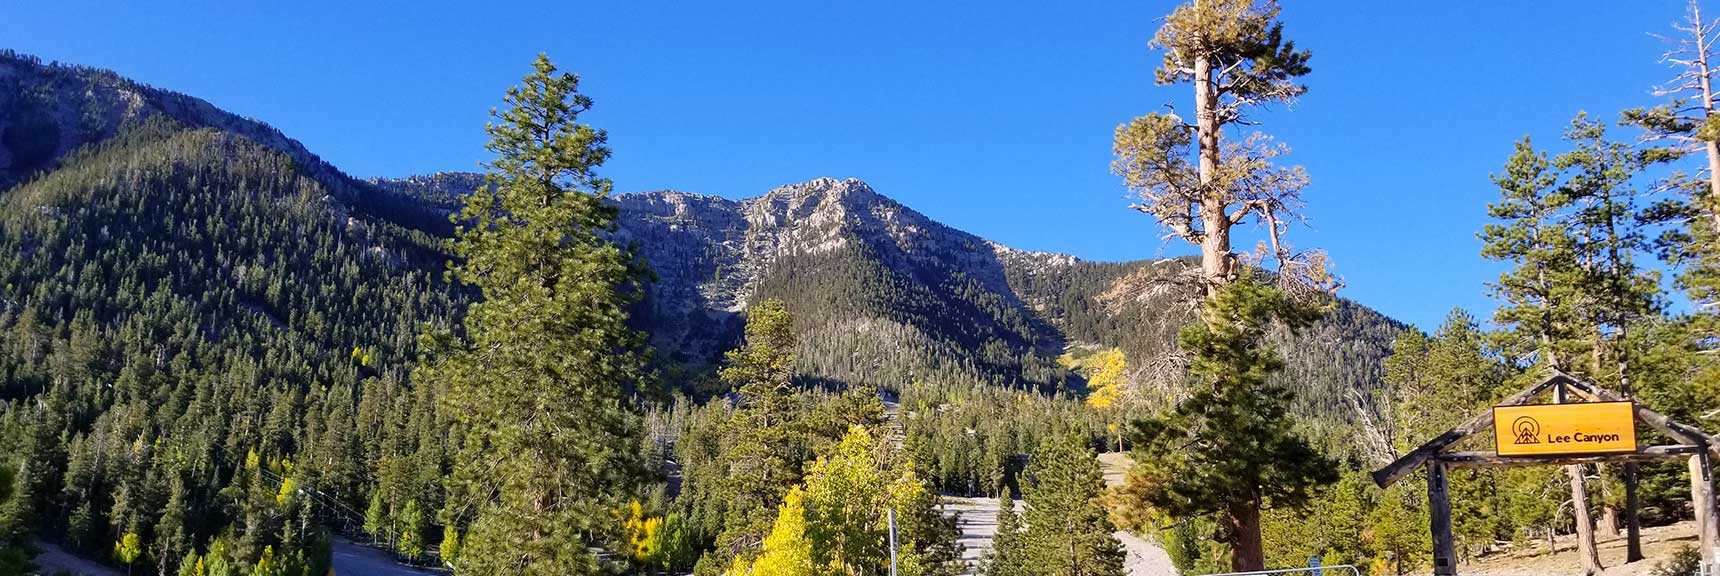 Lee Peak Viewed from Ski Area in Lee Canyon, Nevada